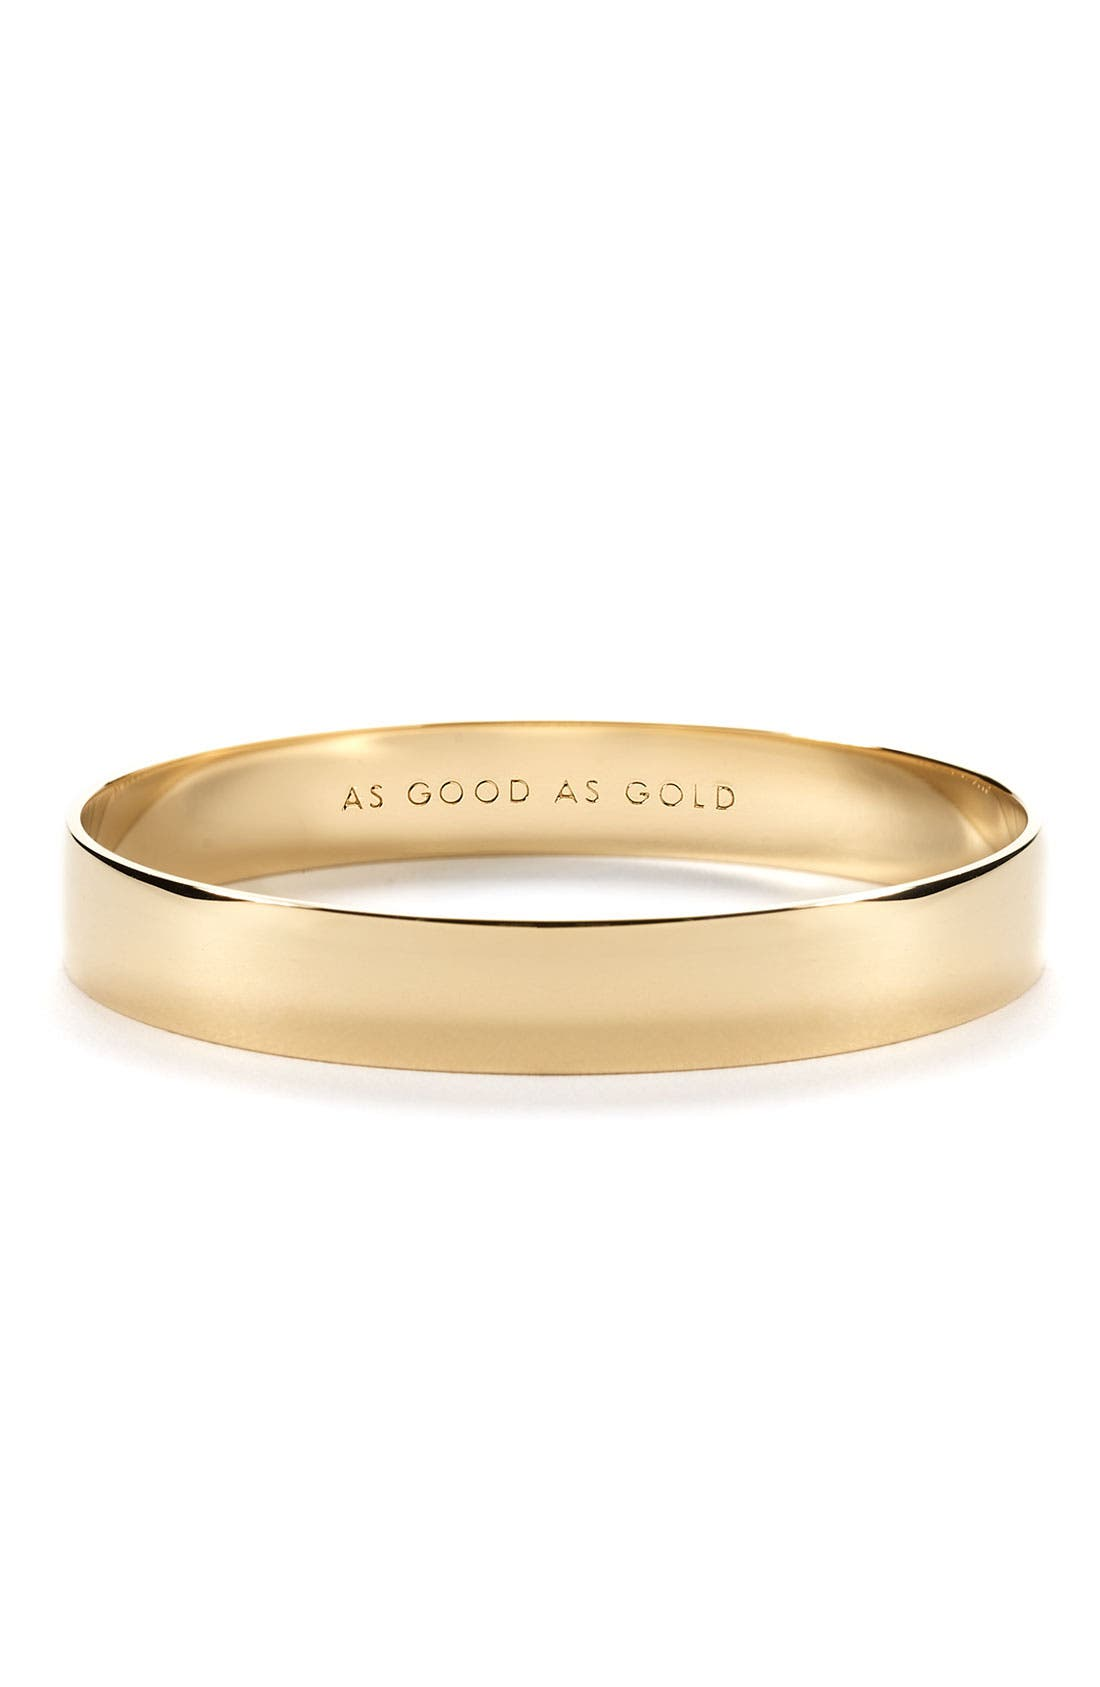 Alternate Image 1 Selected - kate spade new york 'idiom - good as gold' bangle